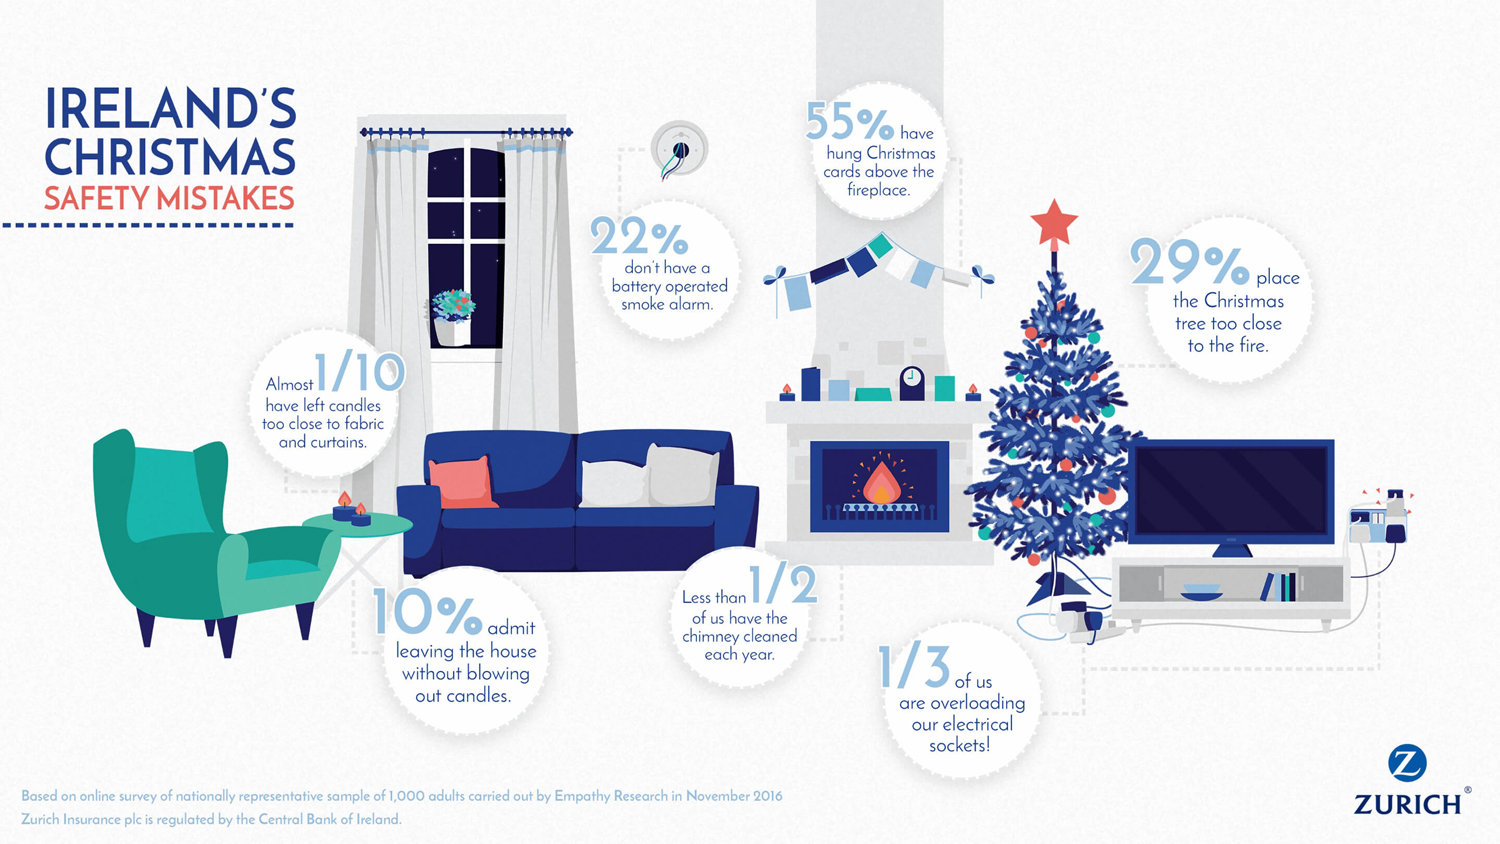 irelands-christmas-safety-mistakes-infographic-small